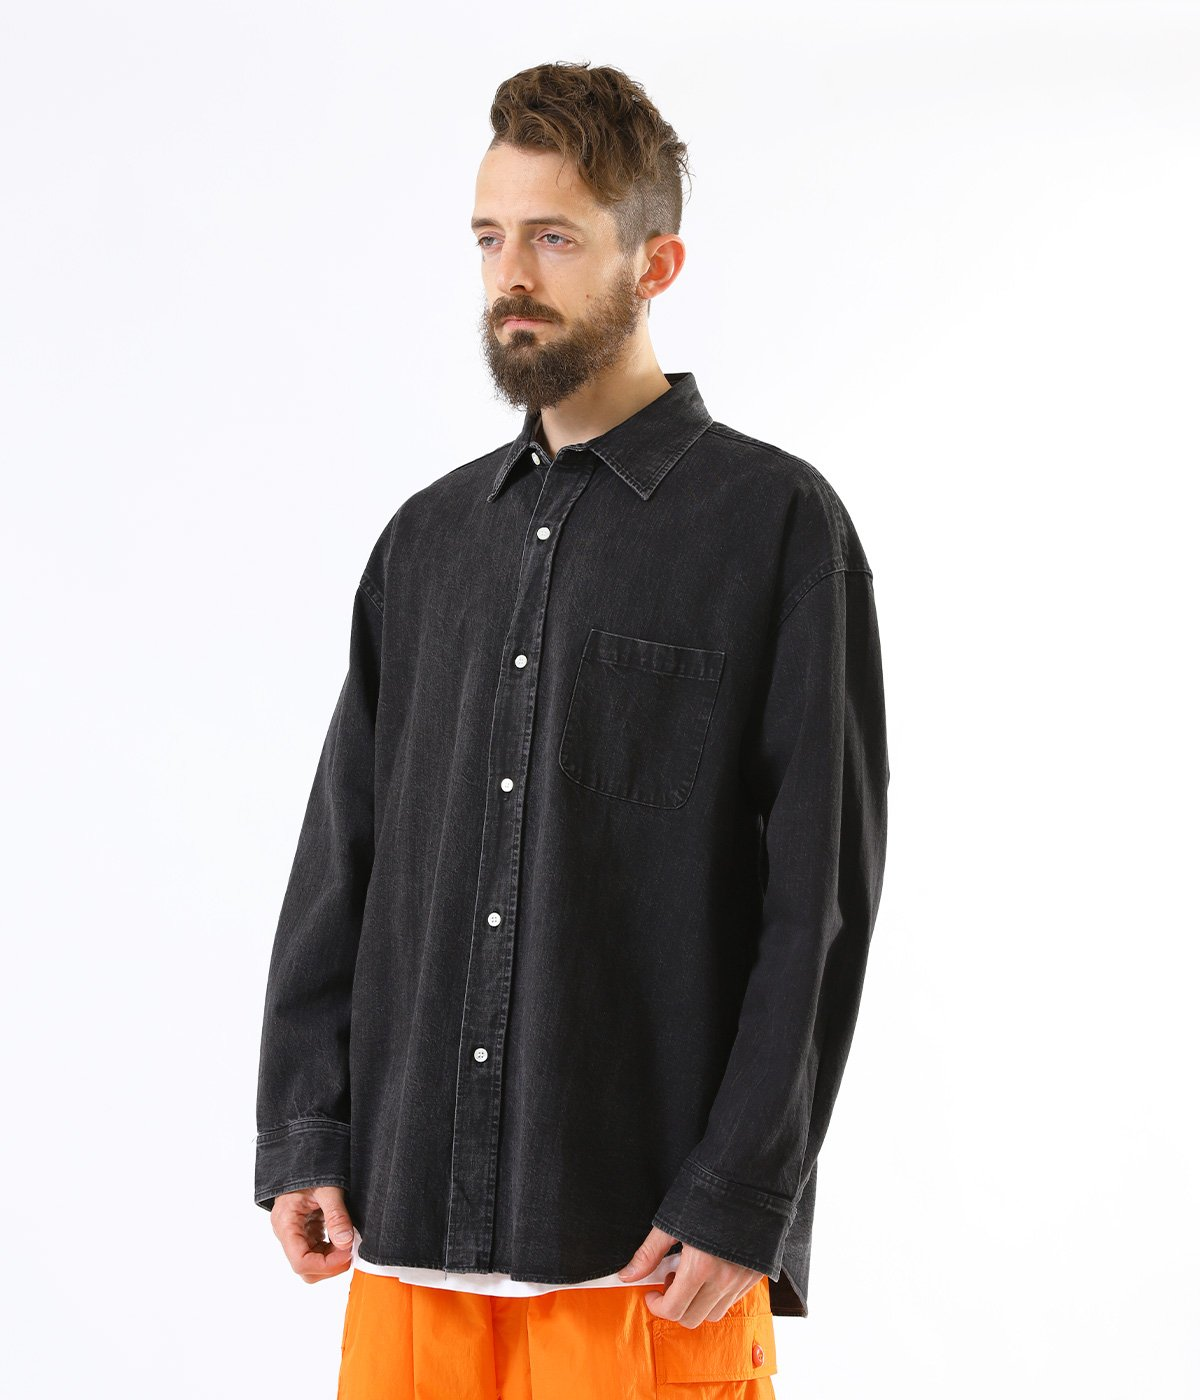 10oz. DENIM BIG SHIRT